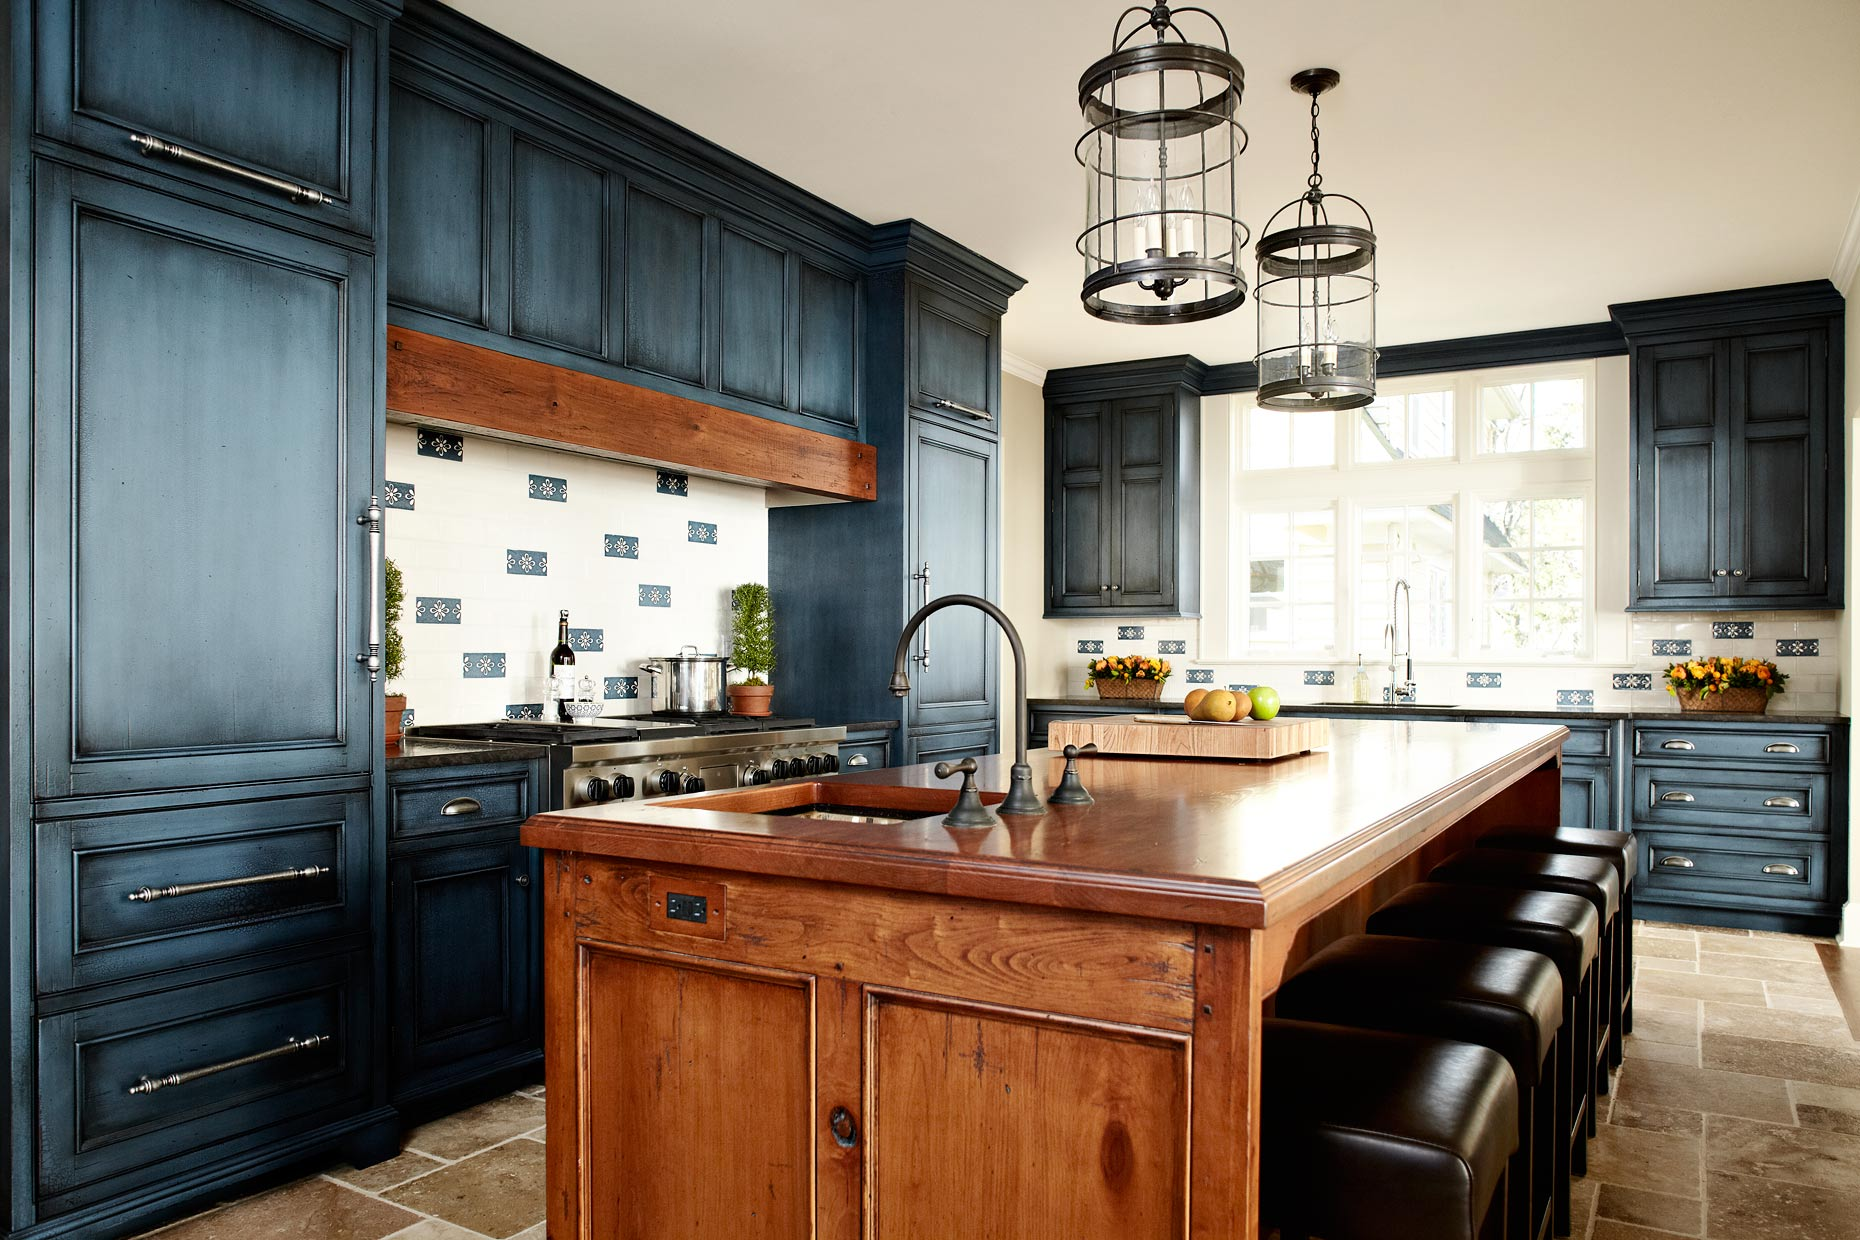 Distressed Wood Countertop design by Heidi Piron